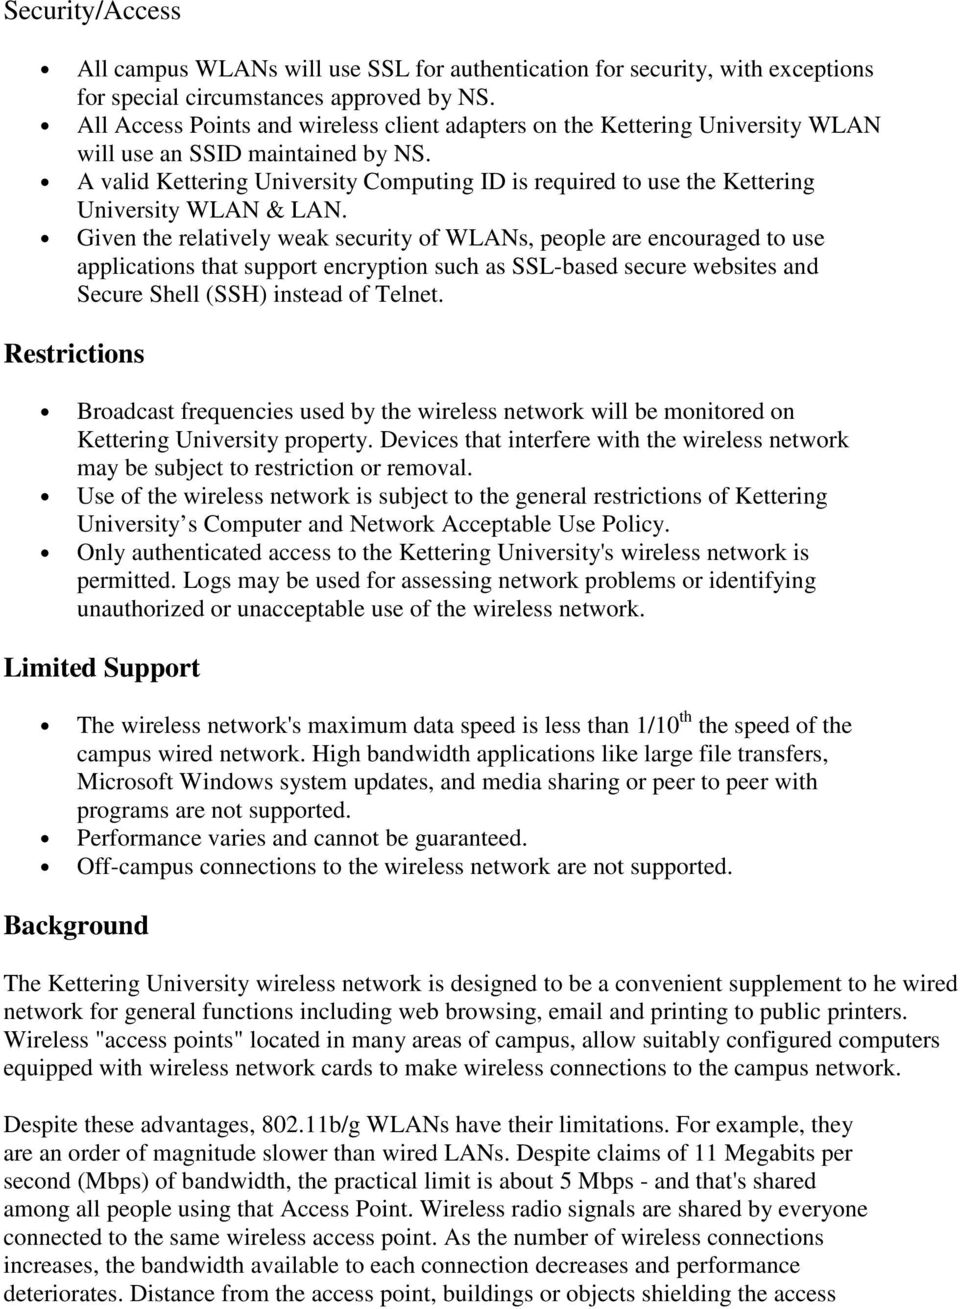 A valid Kettering University Computing ID is required to use the Kettering University WLAN & LAN.